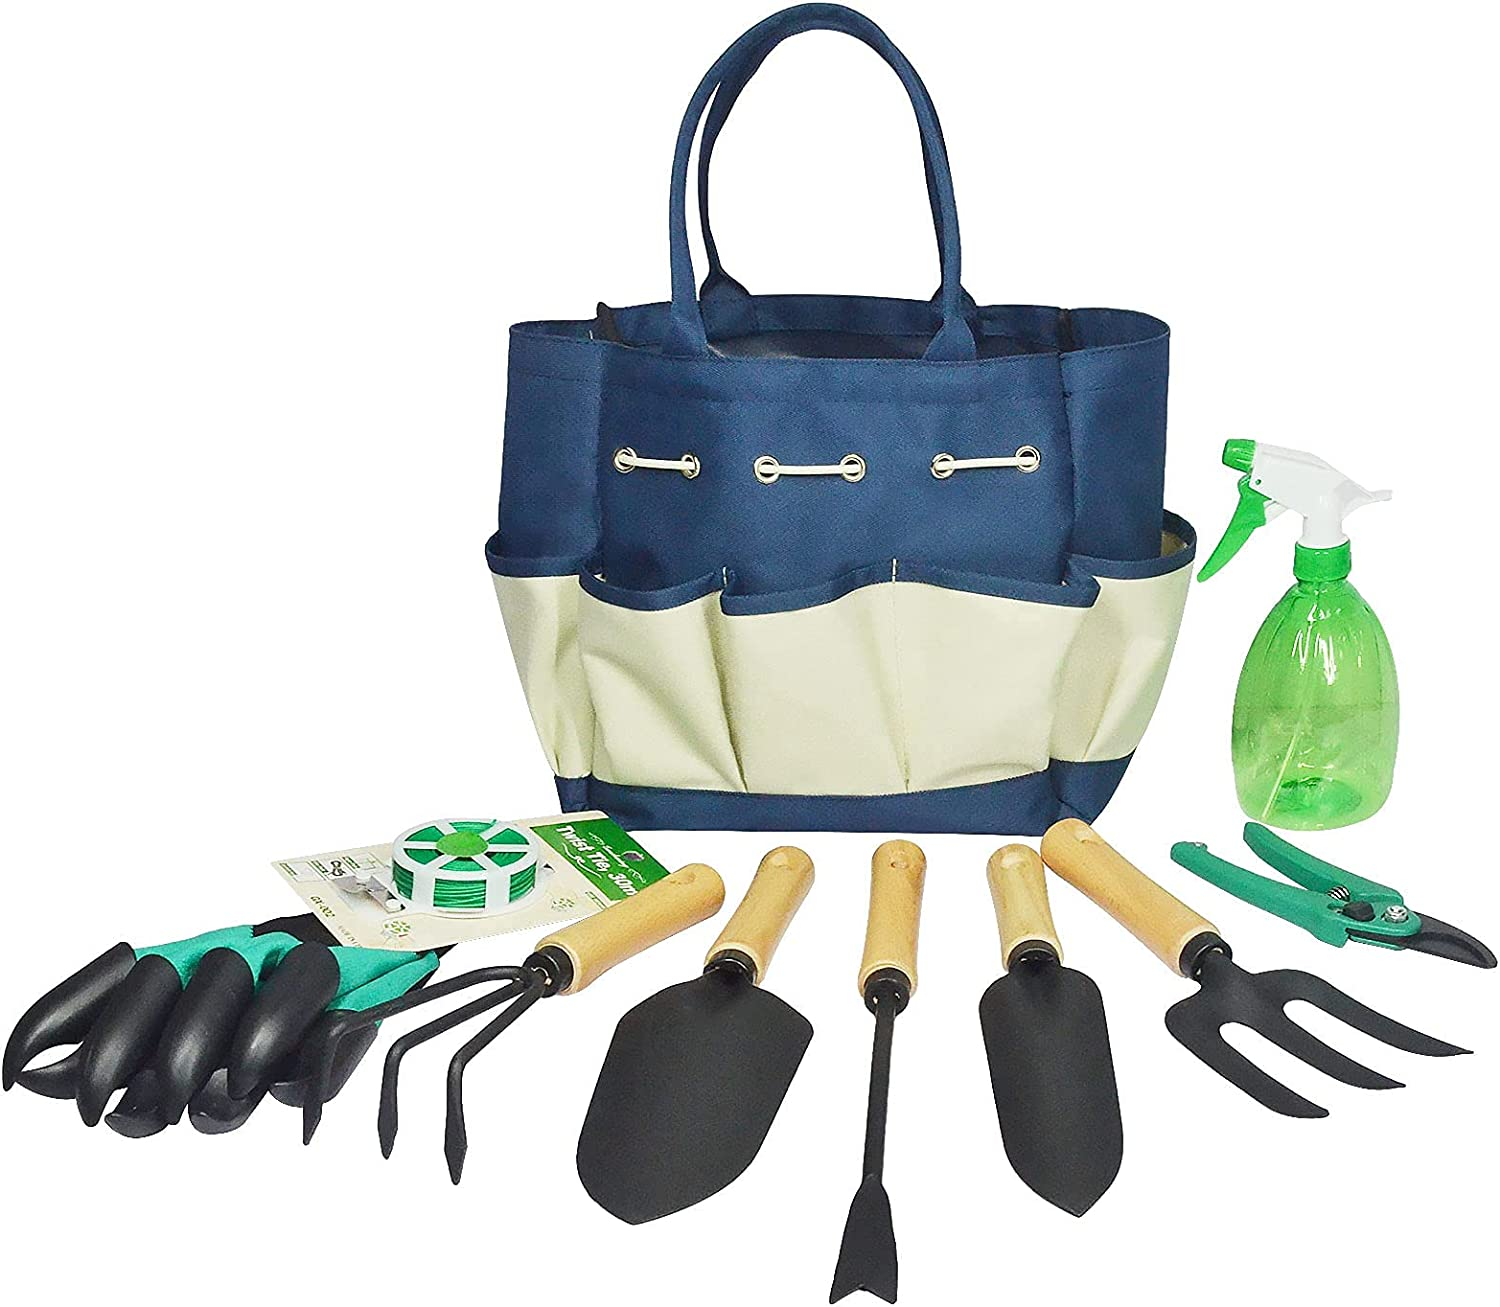 Arkmiido Garden Tools Set 9 Pcs,Stainless Steel Hand Tools with Wooden Handle,5 Tools,Pruning Shears, Gardening Tie,Spray Bottle,Claw Gloves,Tote Storage Bag,Gardening Gifts for Women Men Gardener